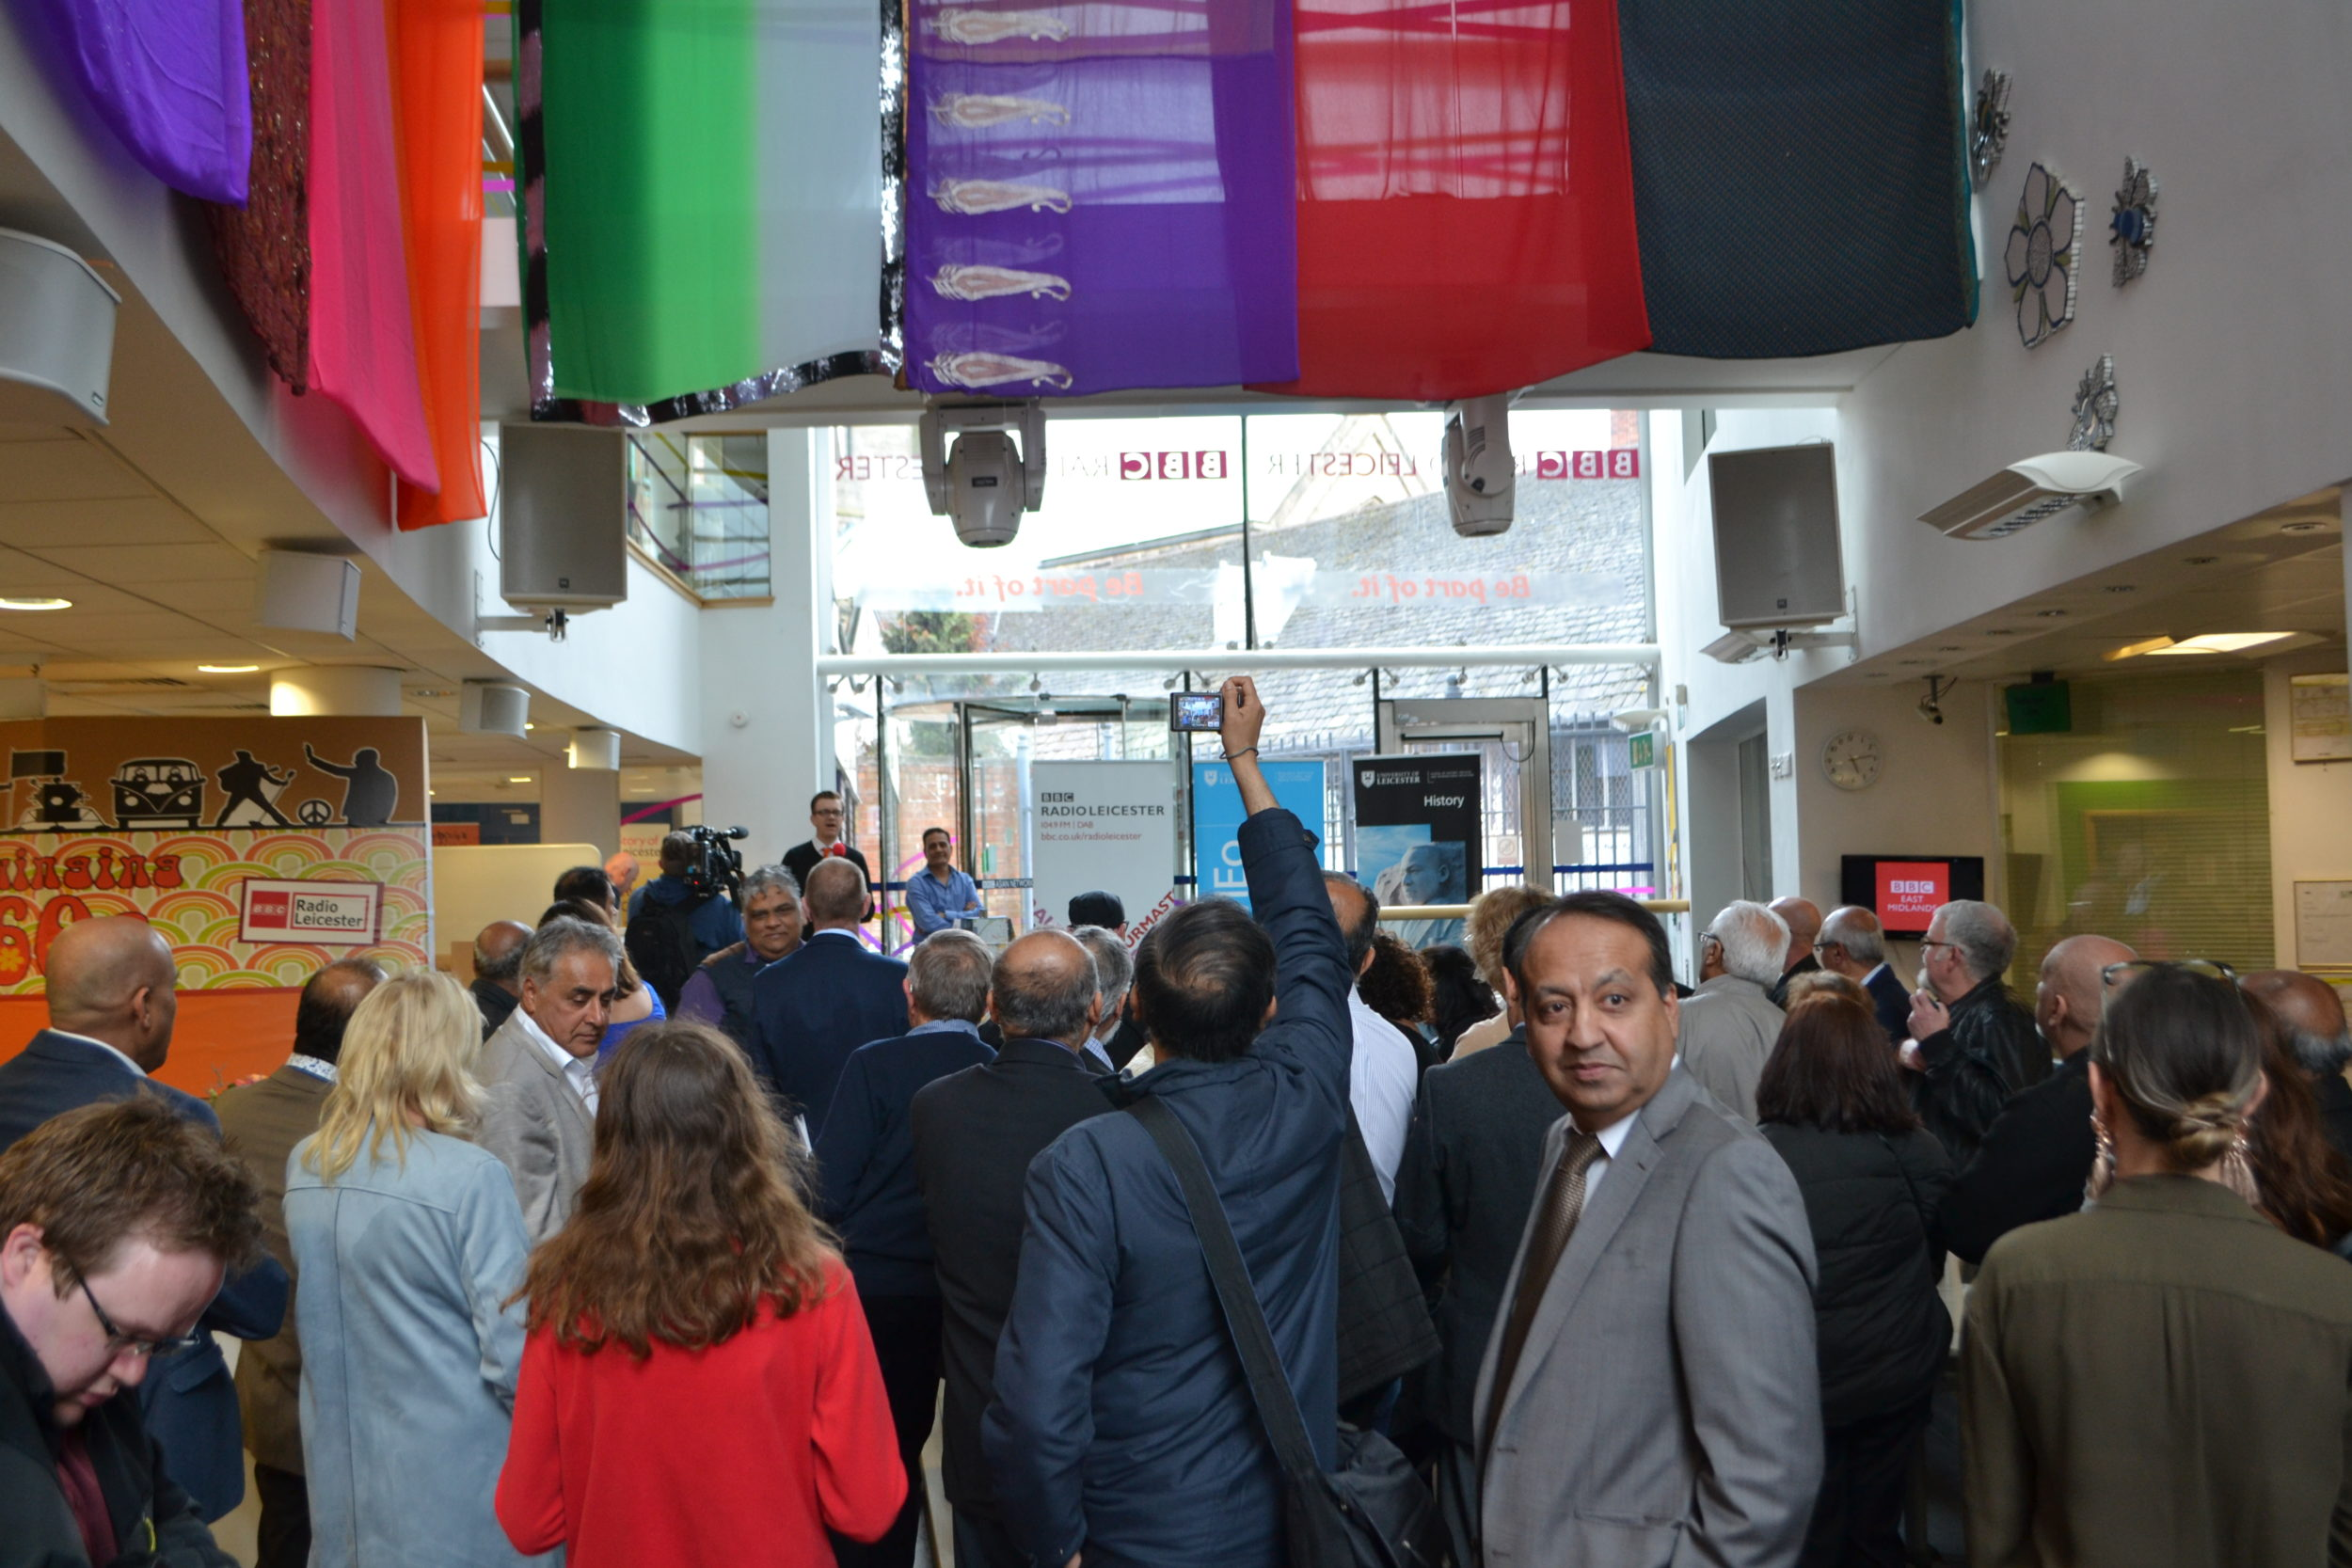 A colour photograph of a gathering of people in the foyer of BBC Radio Leicester.